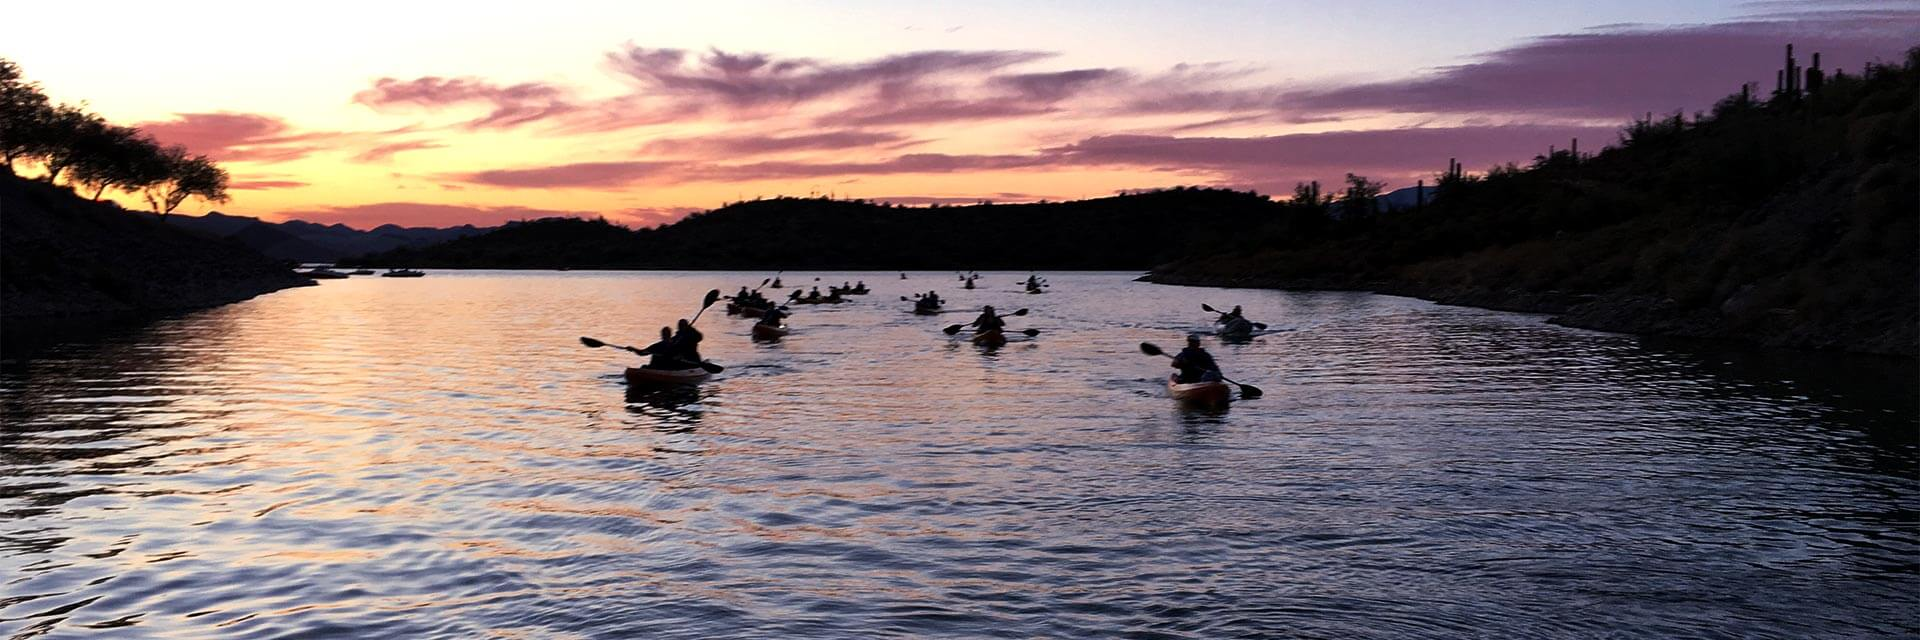 A group of kayakers on the water at sunset